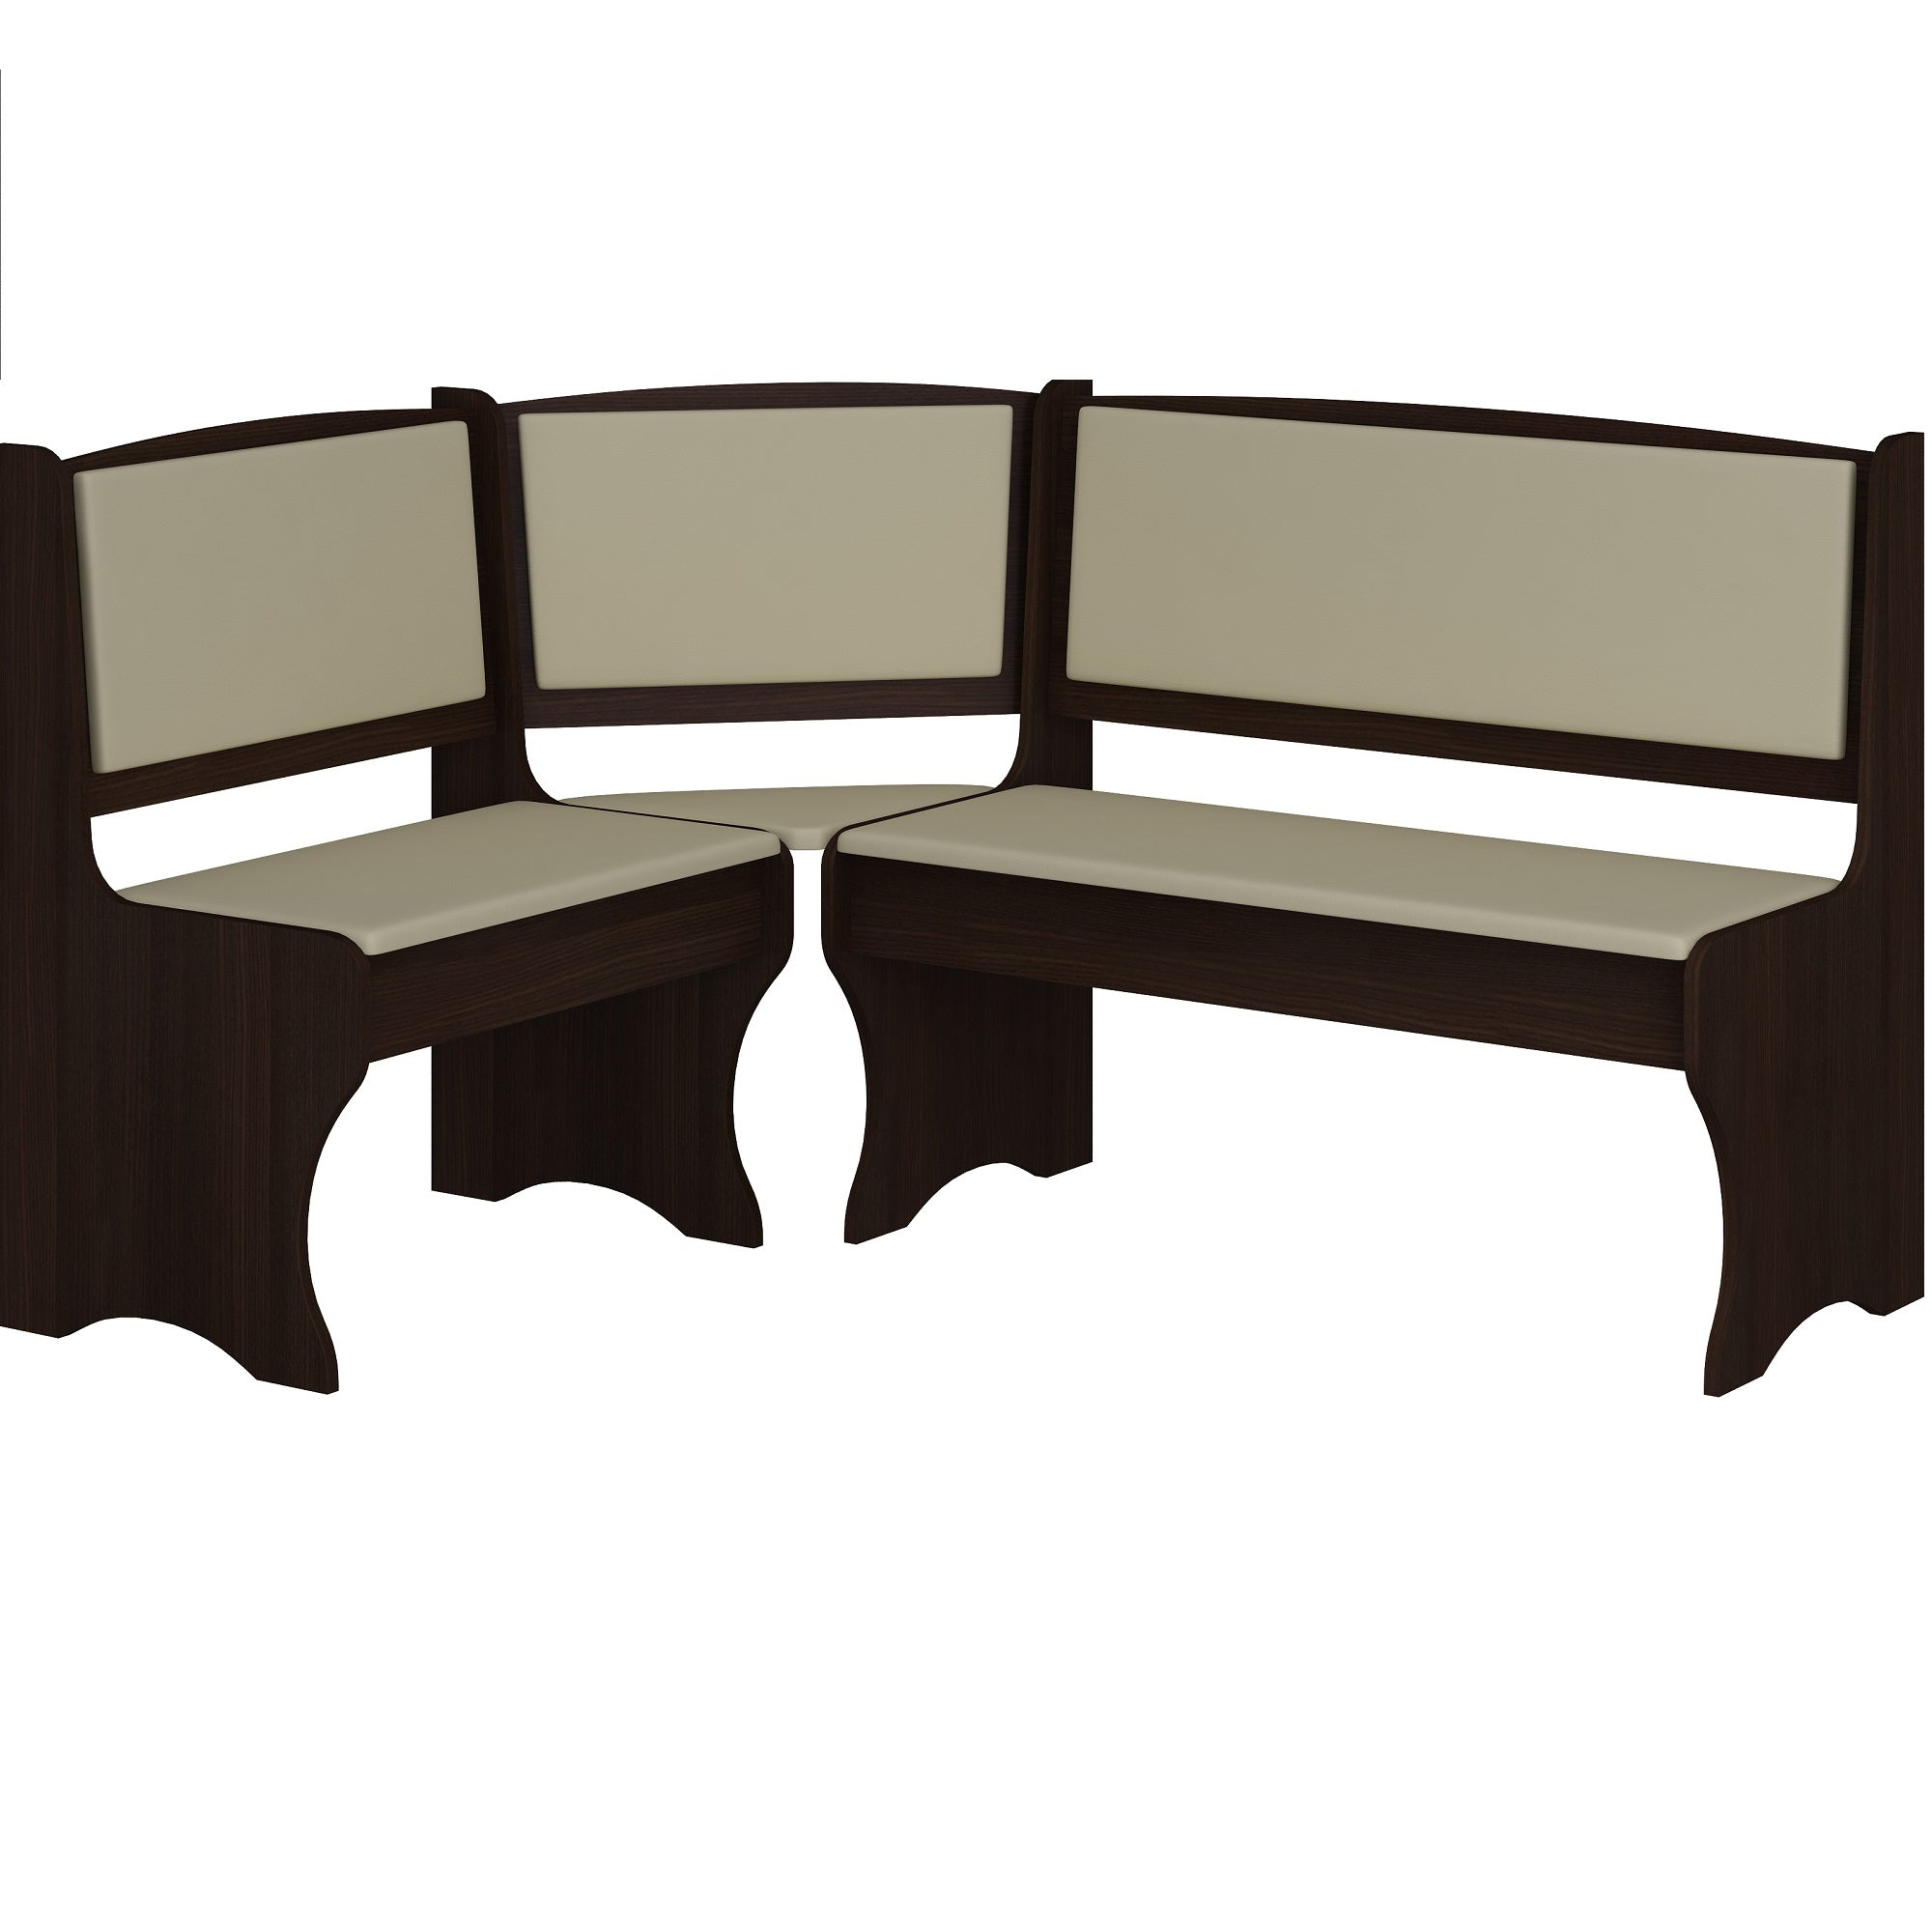 Breakfast Nook 4-Piece Corner Dining Set, Multiple Finishes